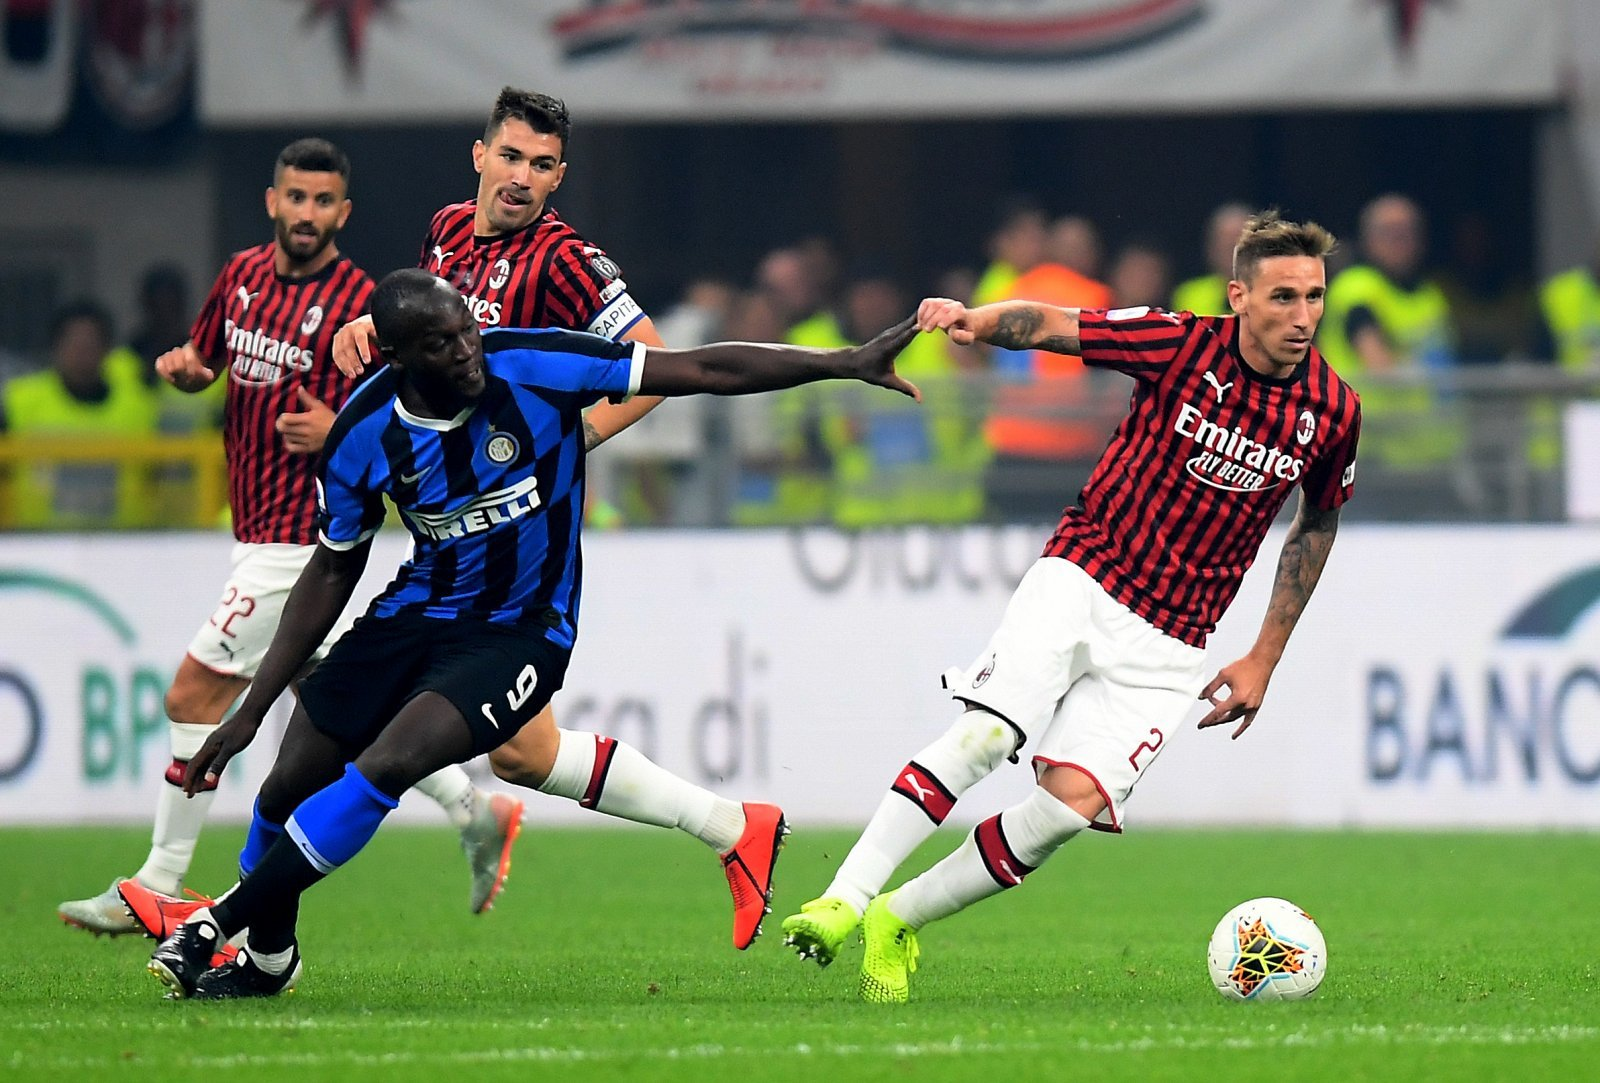 Unsung Hero: AC Milan's Lucas Biglia gave the foundation for victory over Genoa